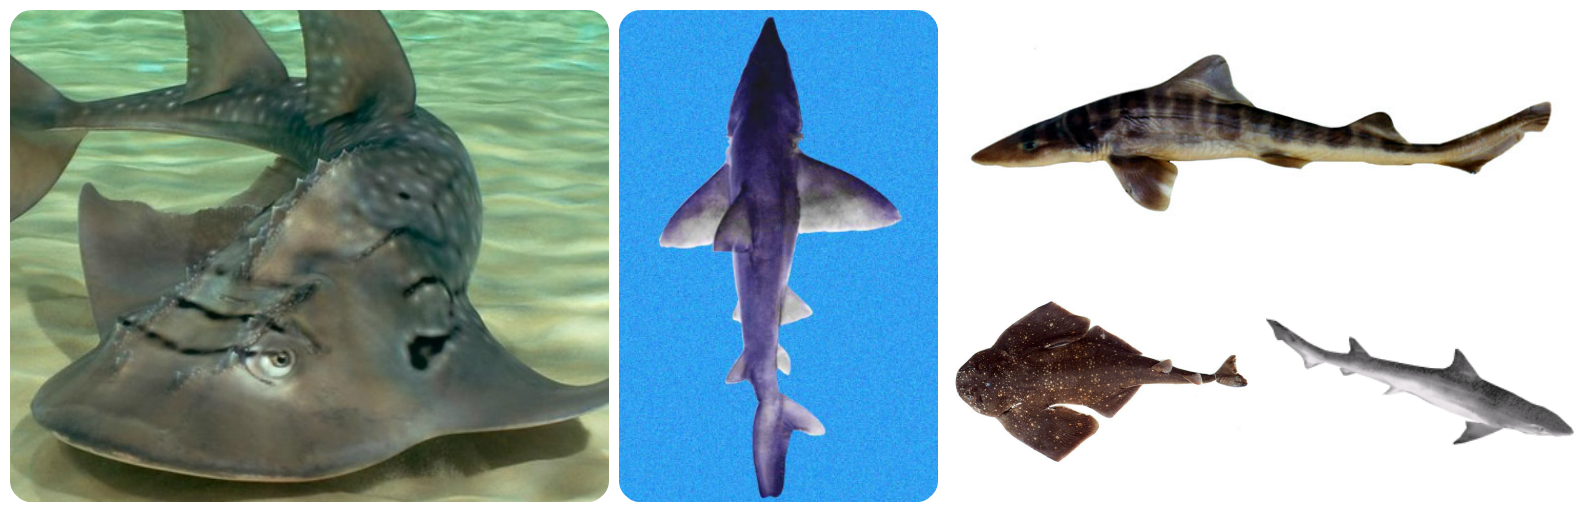 Trump Admin Protects Five Sharks, Guitarfish, Under Endangered Species Act Following Petition